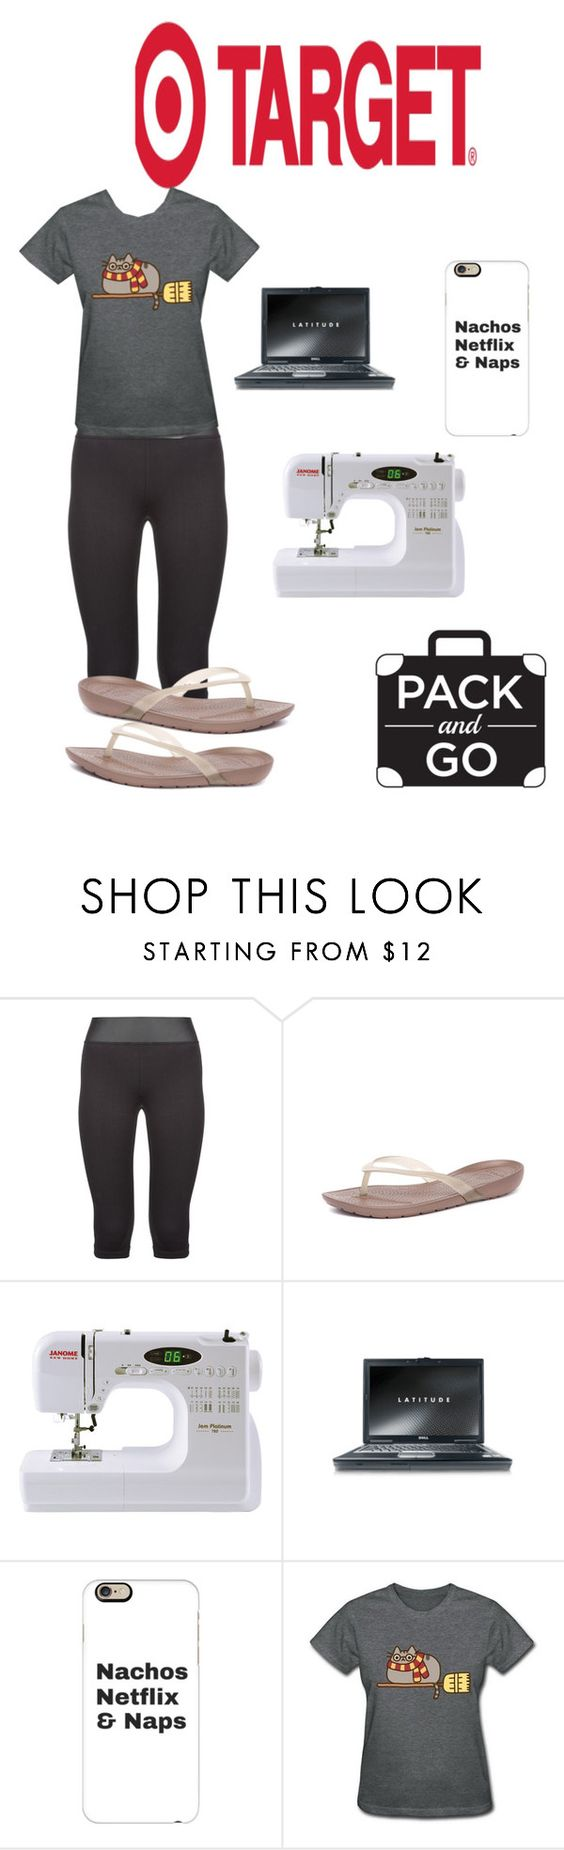 """""""Staycation #packandgo"""" by kelly-haven-russell ❤ liked on Polyvore featuring Olympia, Crocs, JEM, Casetify and Pusheen"""